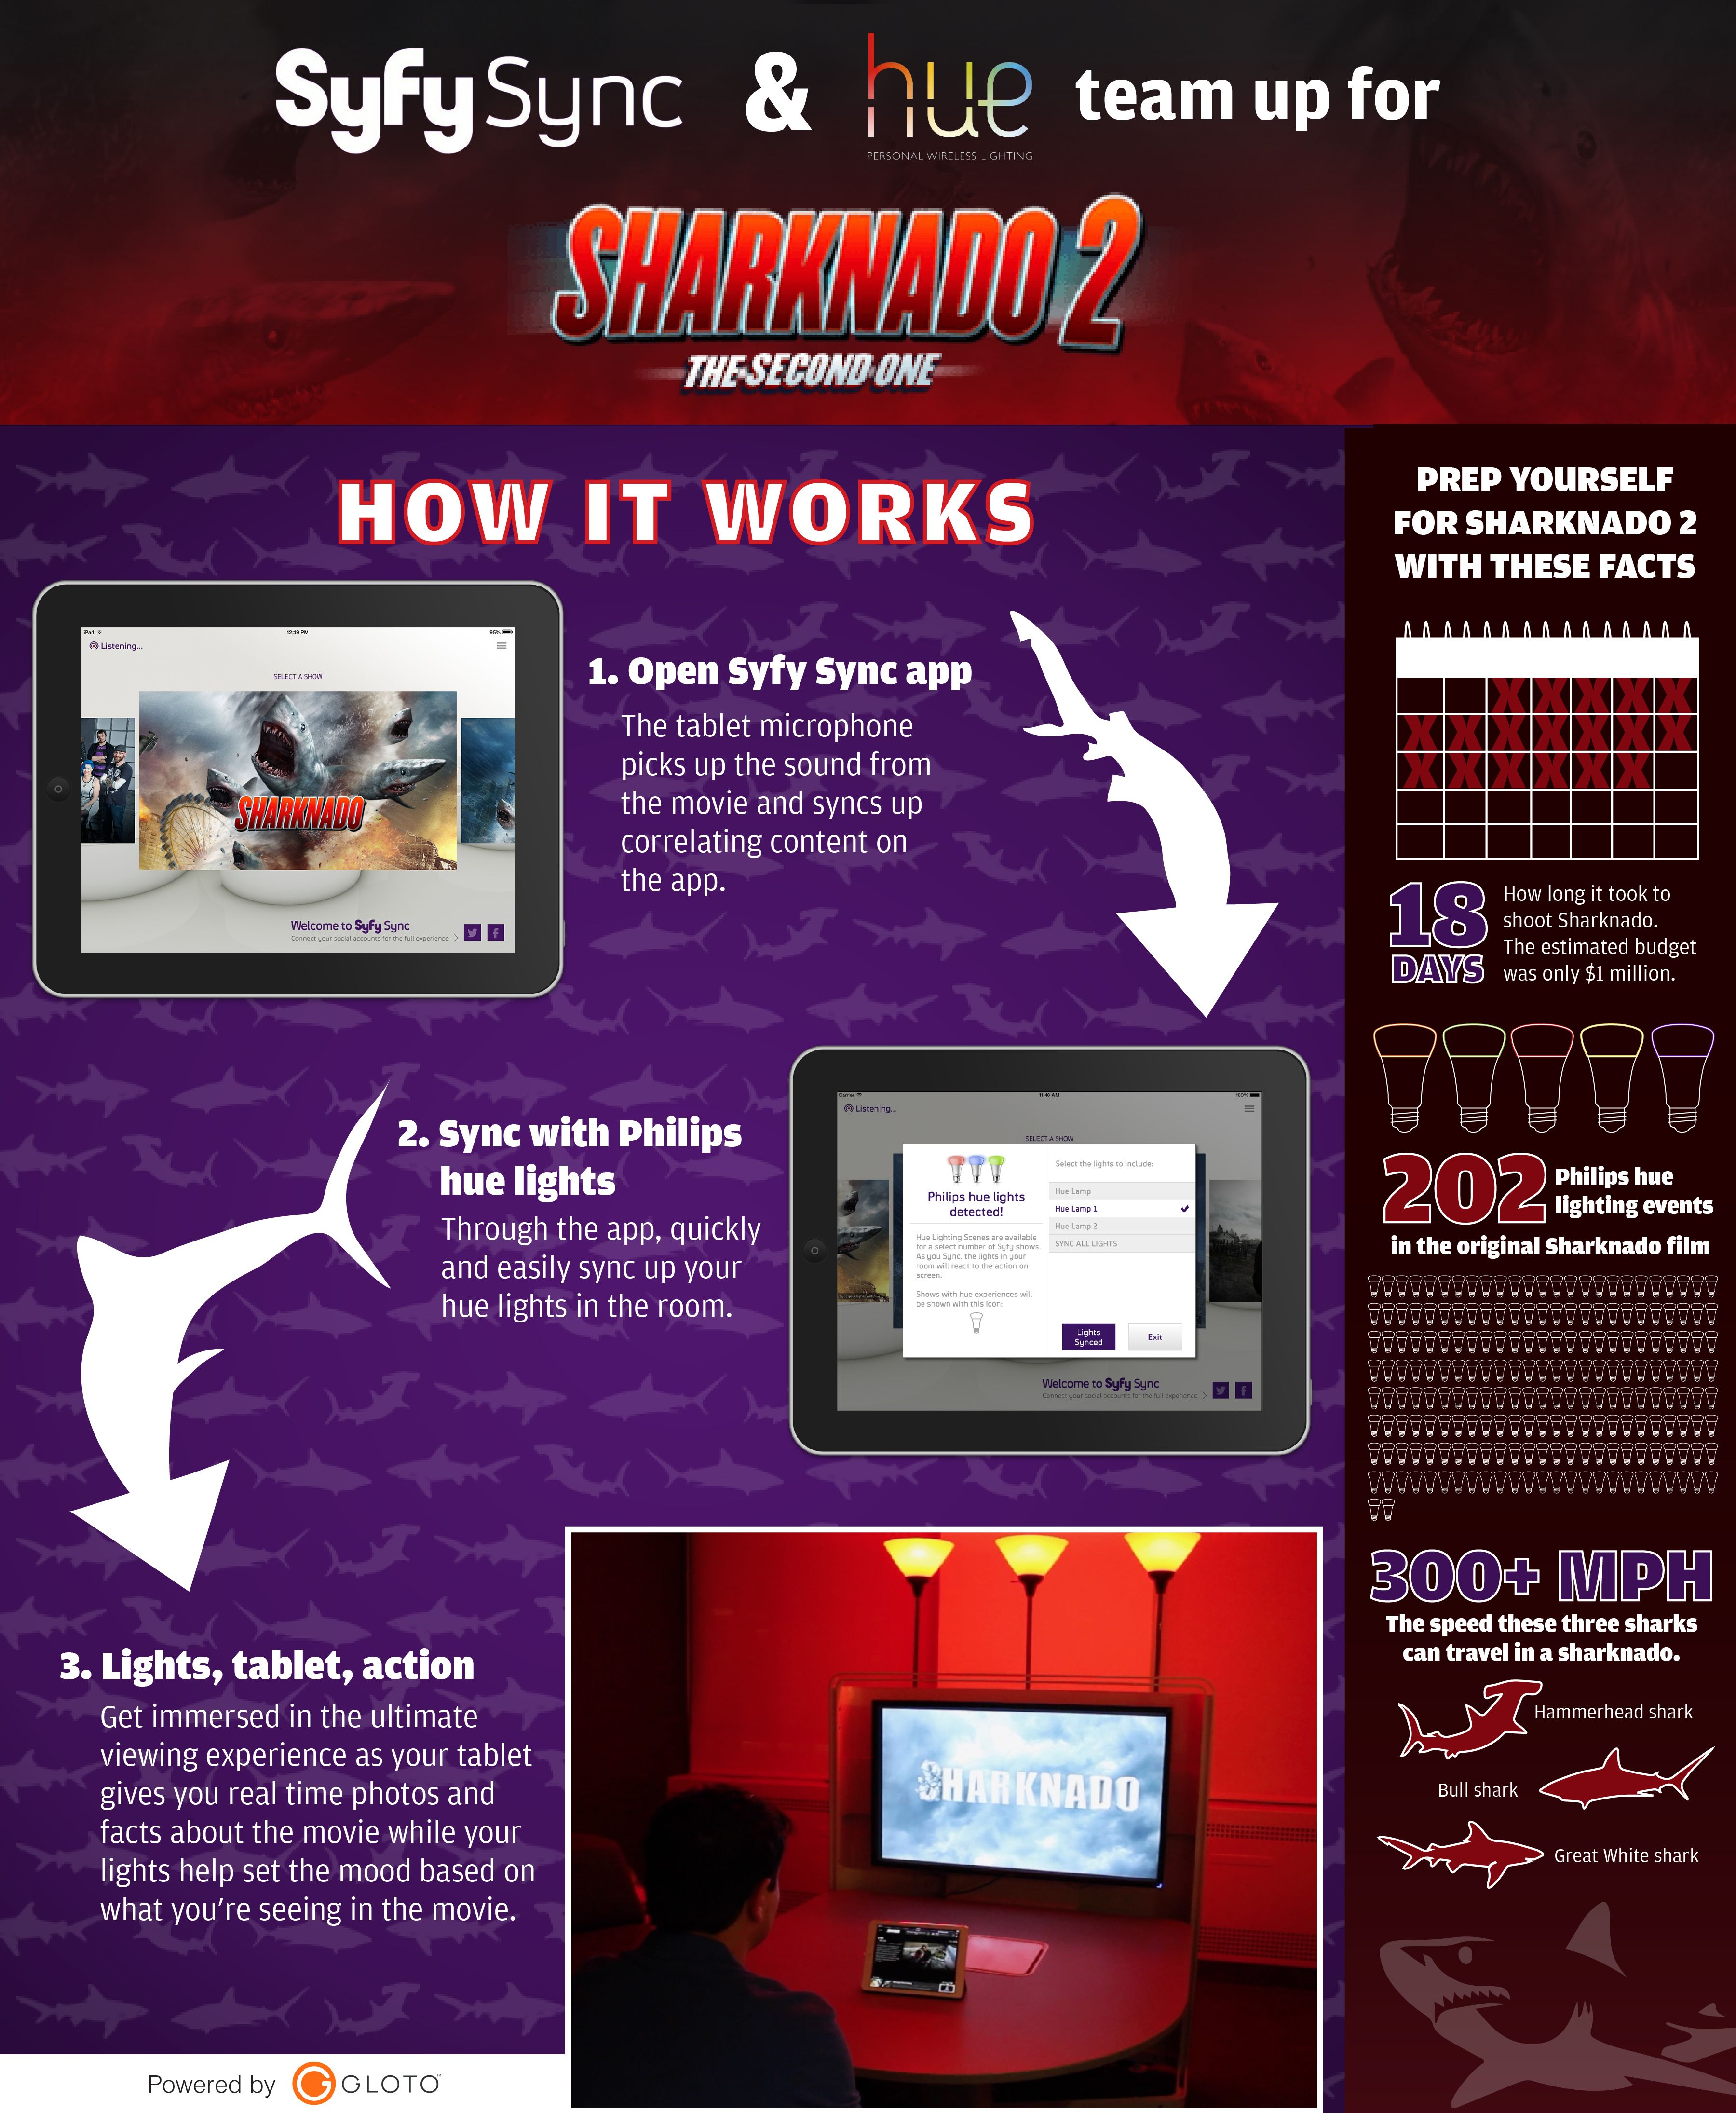 Grab the nearest chainsaw and prepare yourself for Sharknado 2: The